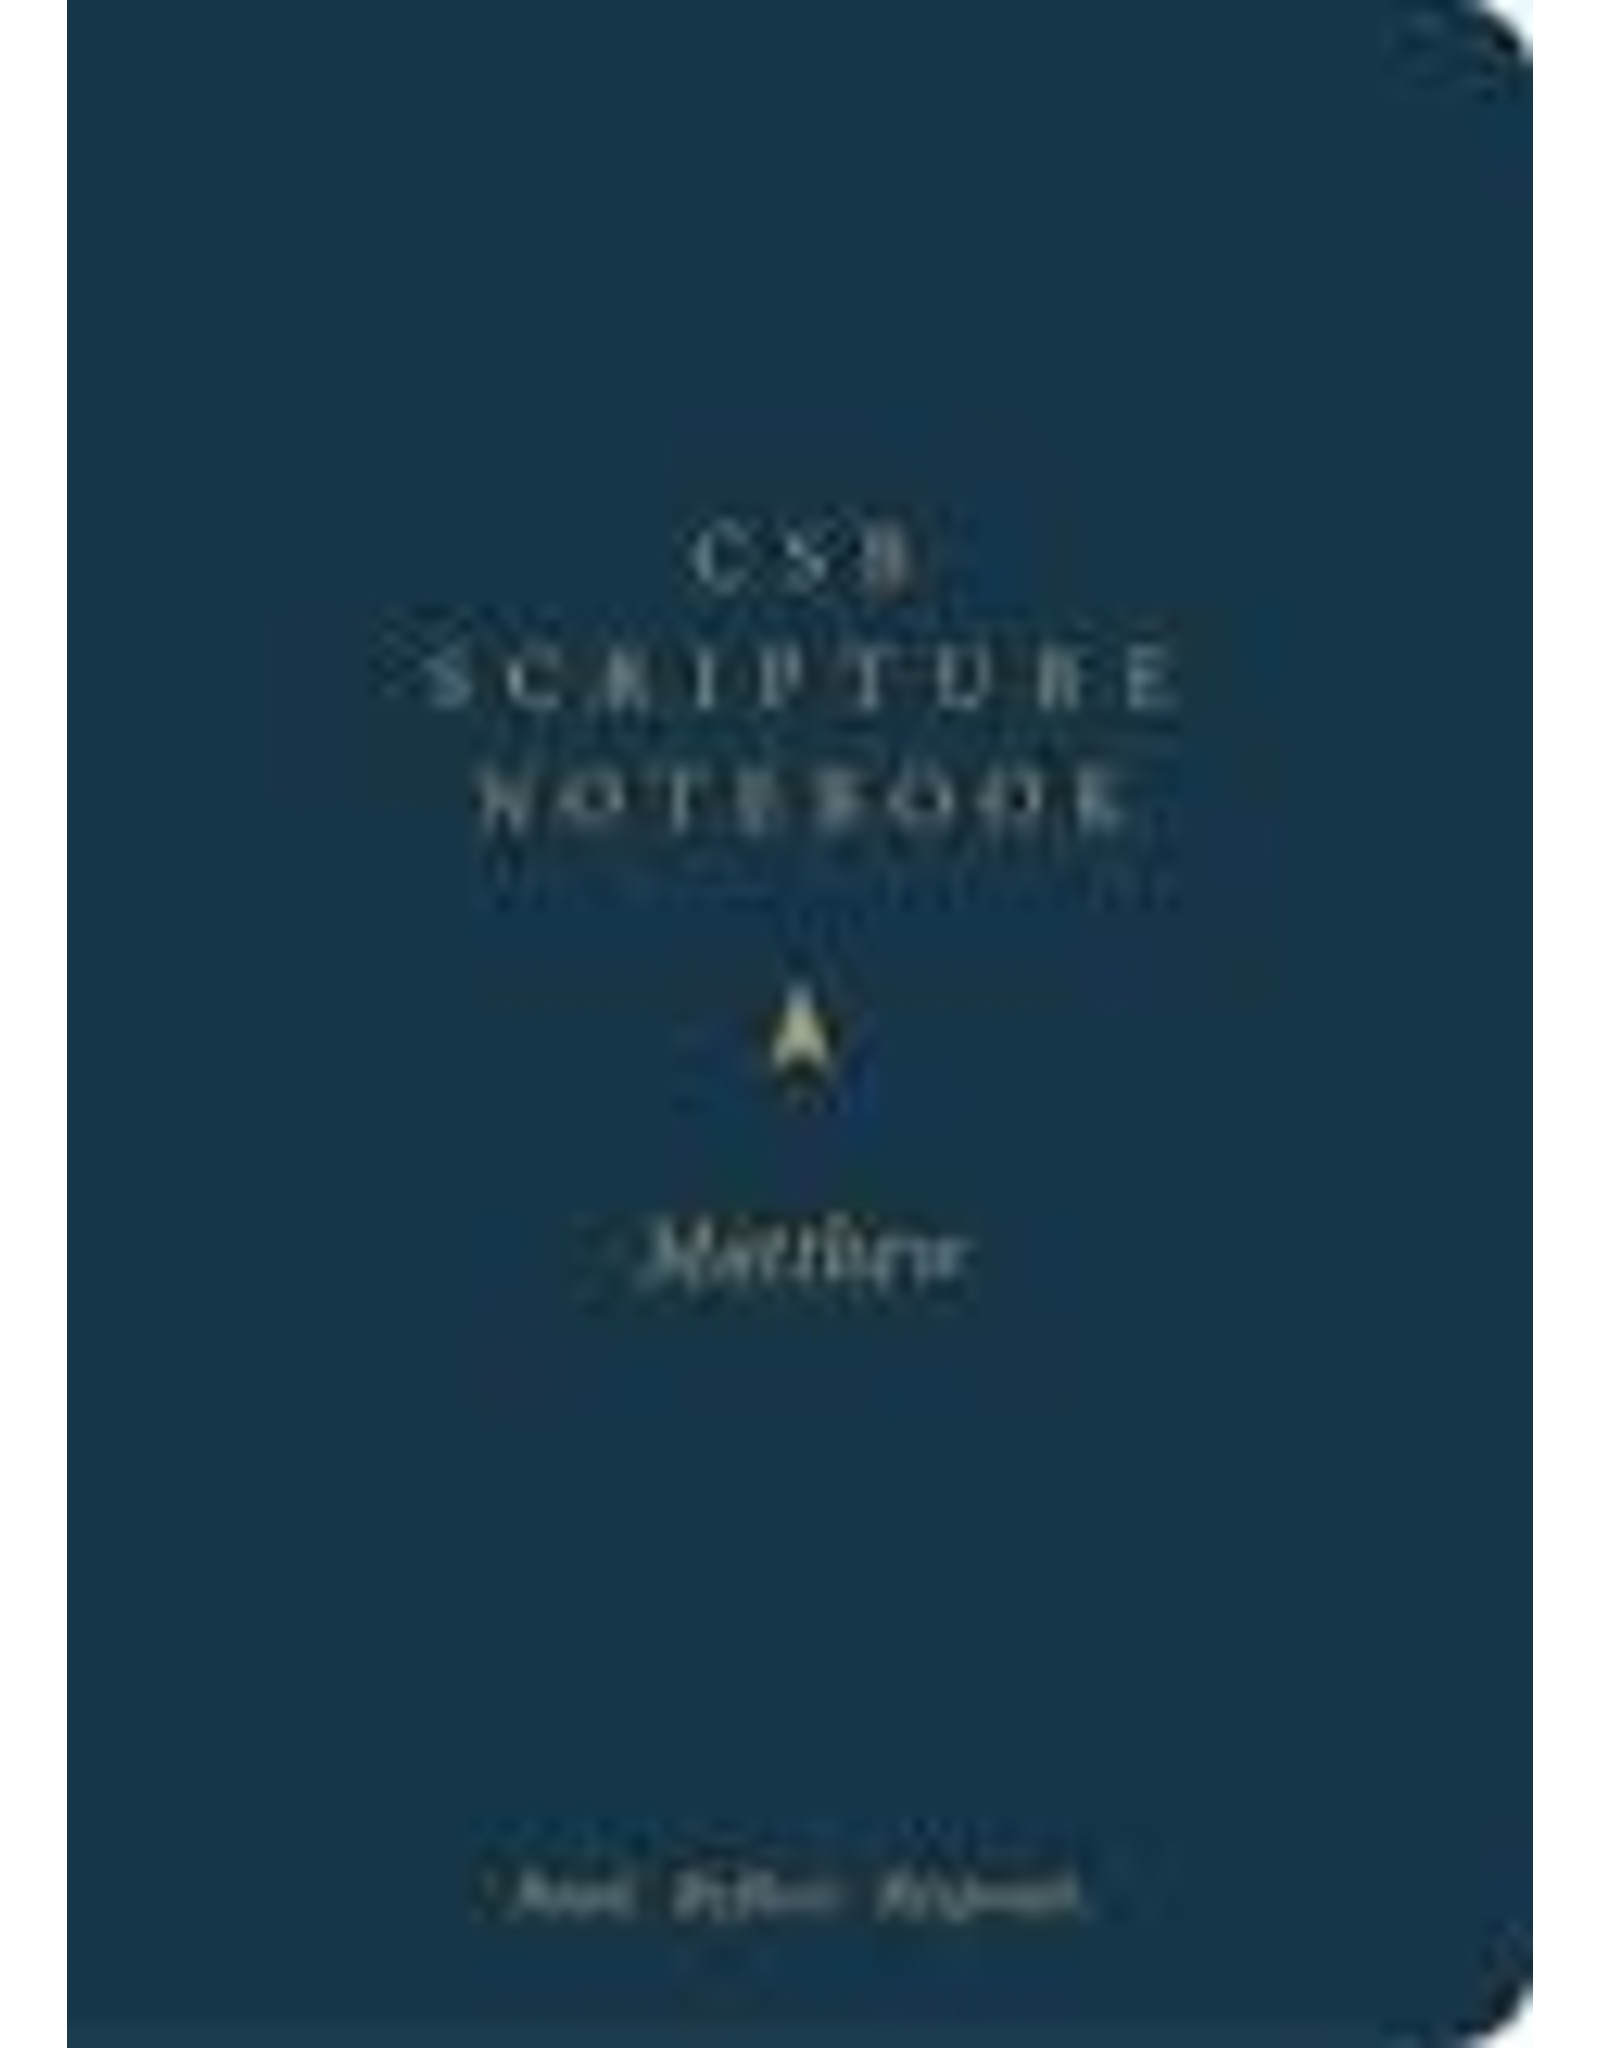 Holman CSB Scripture Notebook - Matthew